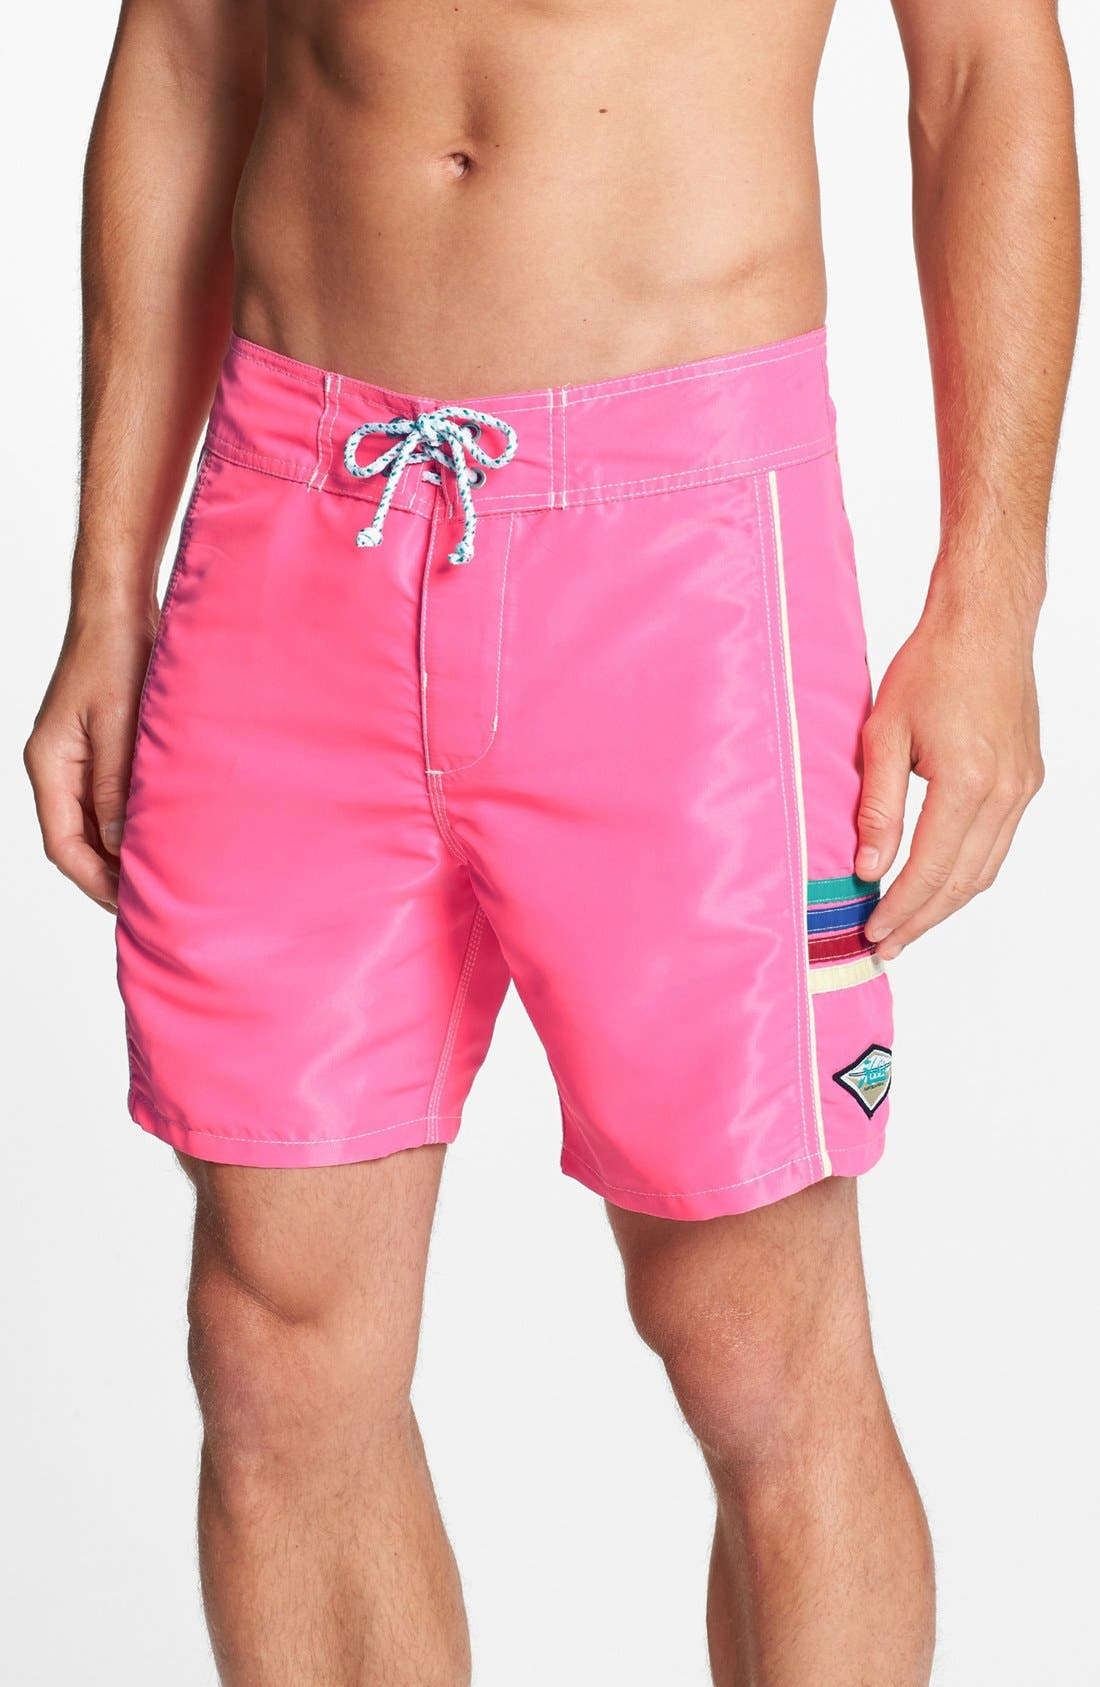 Alternate Image 1 Selected - Hobie 'Solid State' Board Shorts